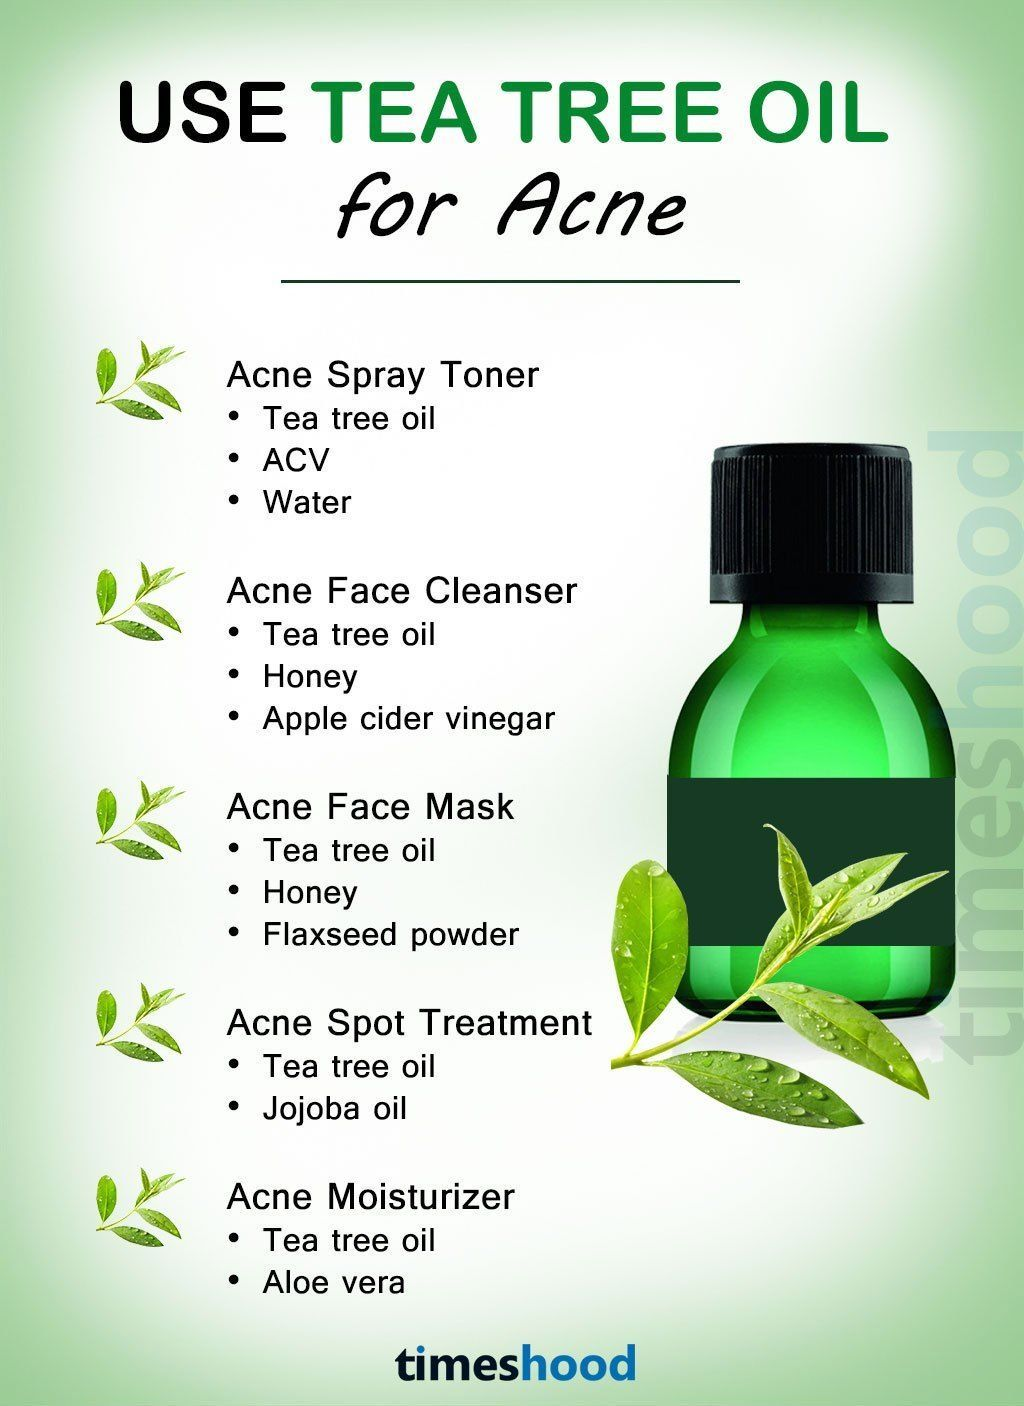 Use Tea Tree Oil For Acne And Pimples How To Use Tea Tree Oil To Get Rid Of Acne And Pimples Fast A Tea Tree Oil For Acne How To Get